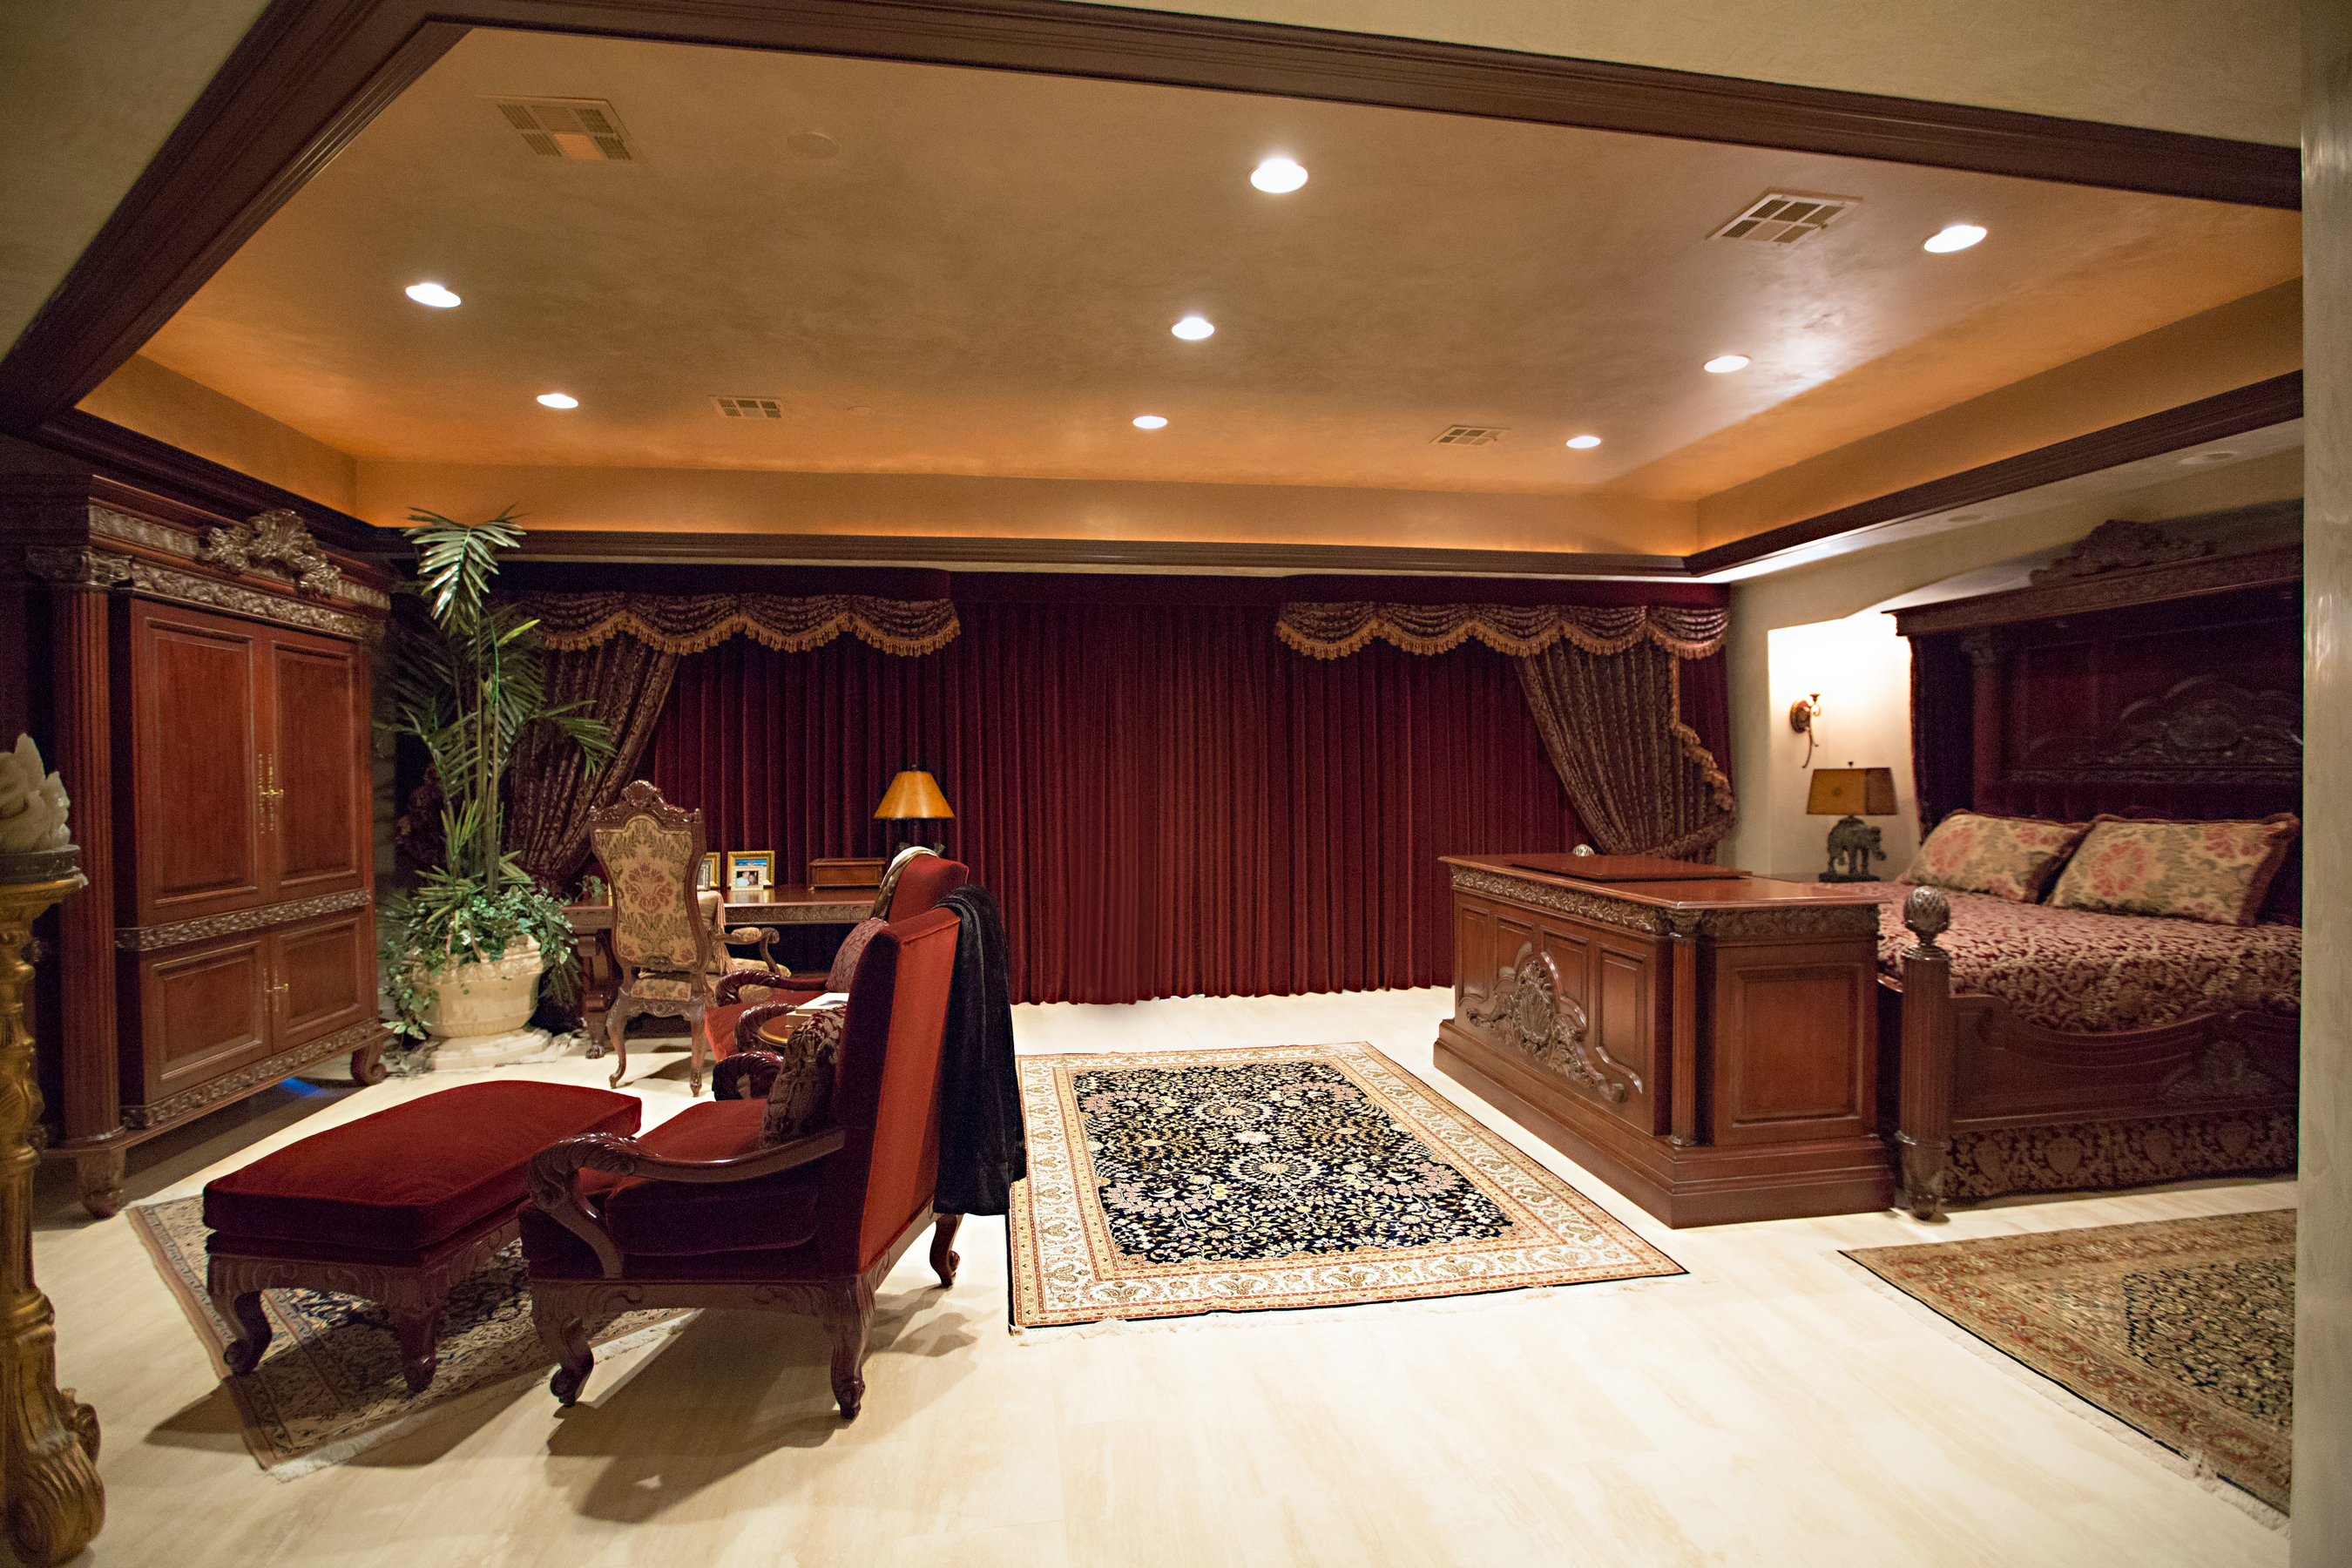 Upholstery and drapery gallery amore interiors Interior decorators las vegas